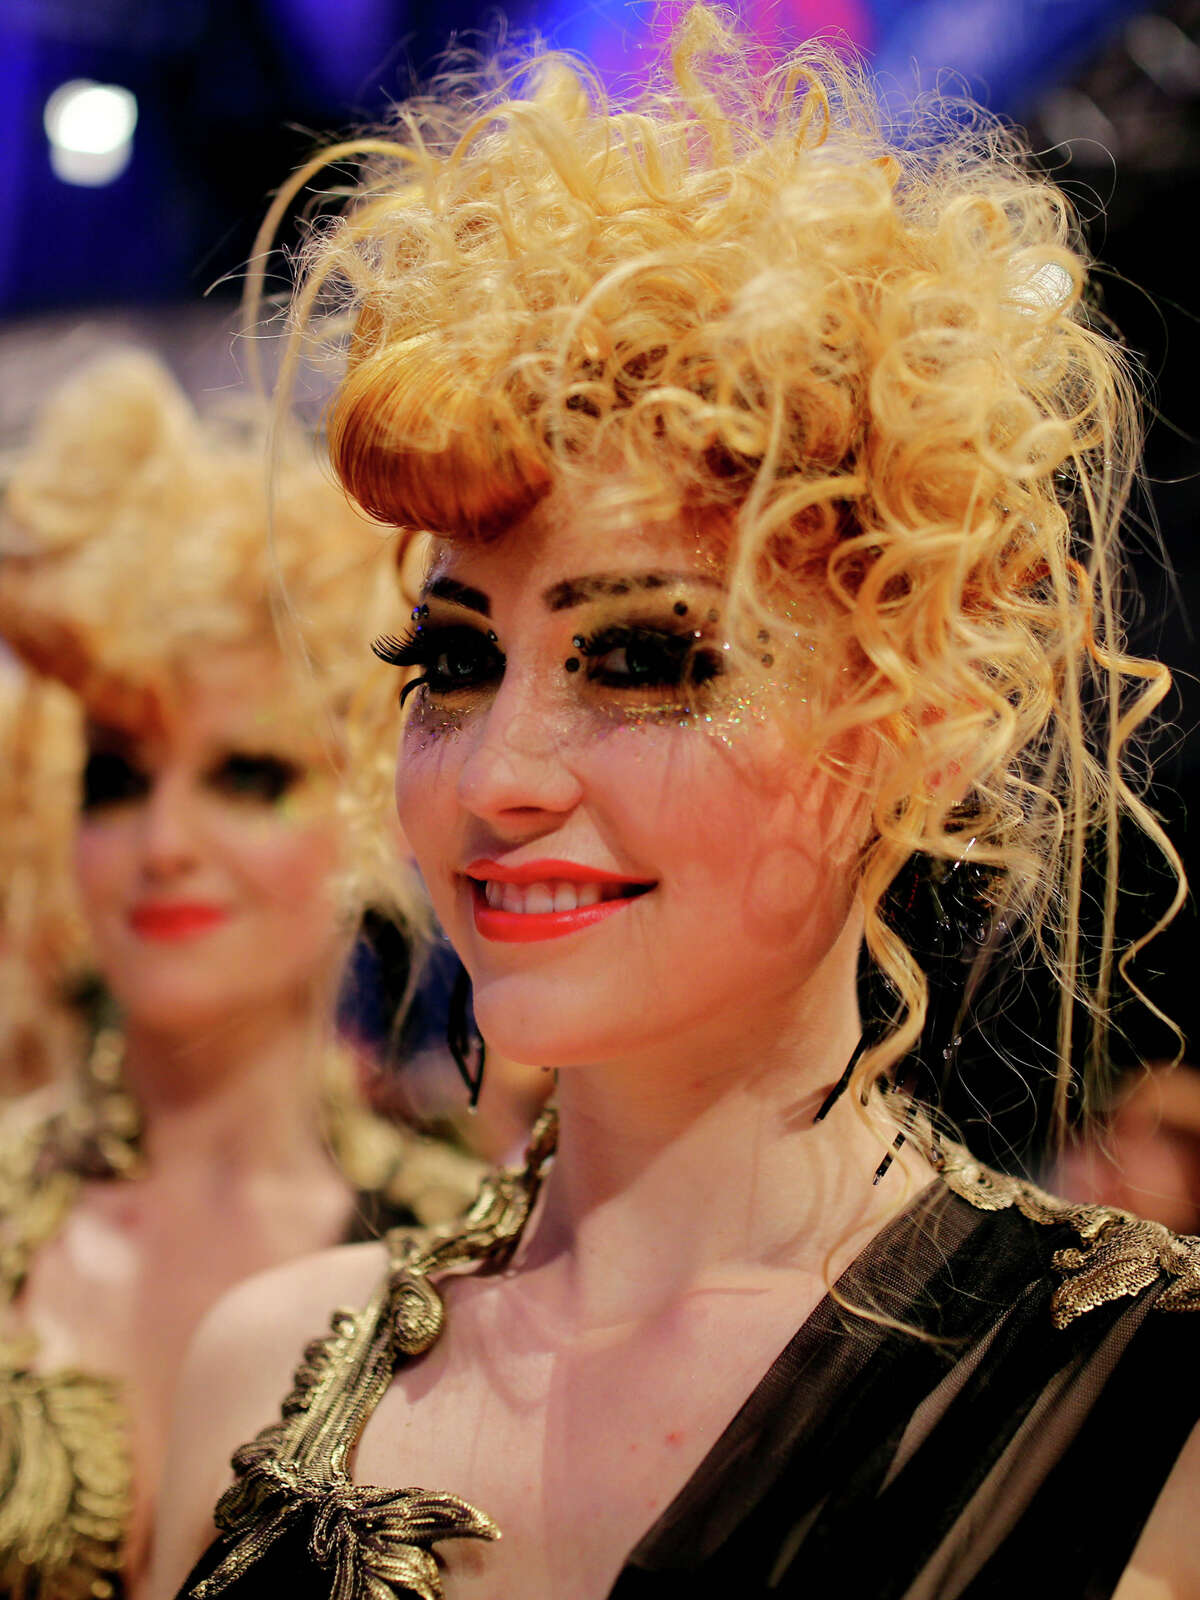 Models walk on the podium during the OMC Hairworld World Cup contest on May 5, 2014 in Frankfurt am Main, Germany.